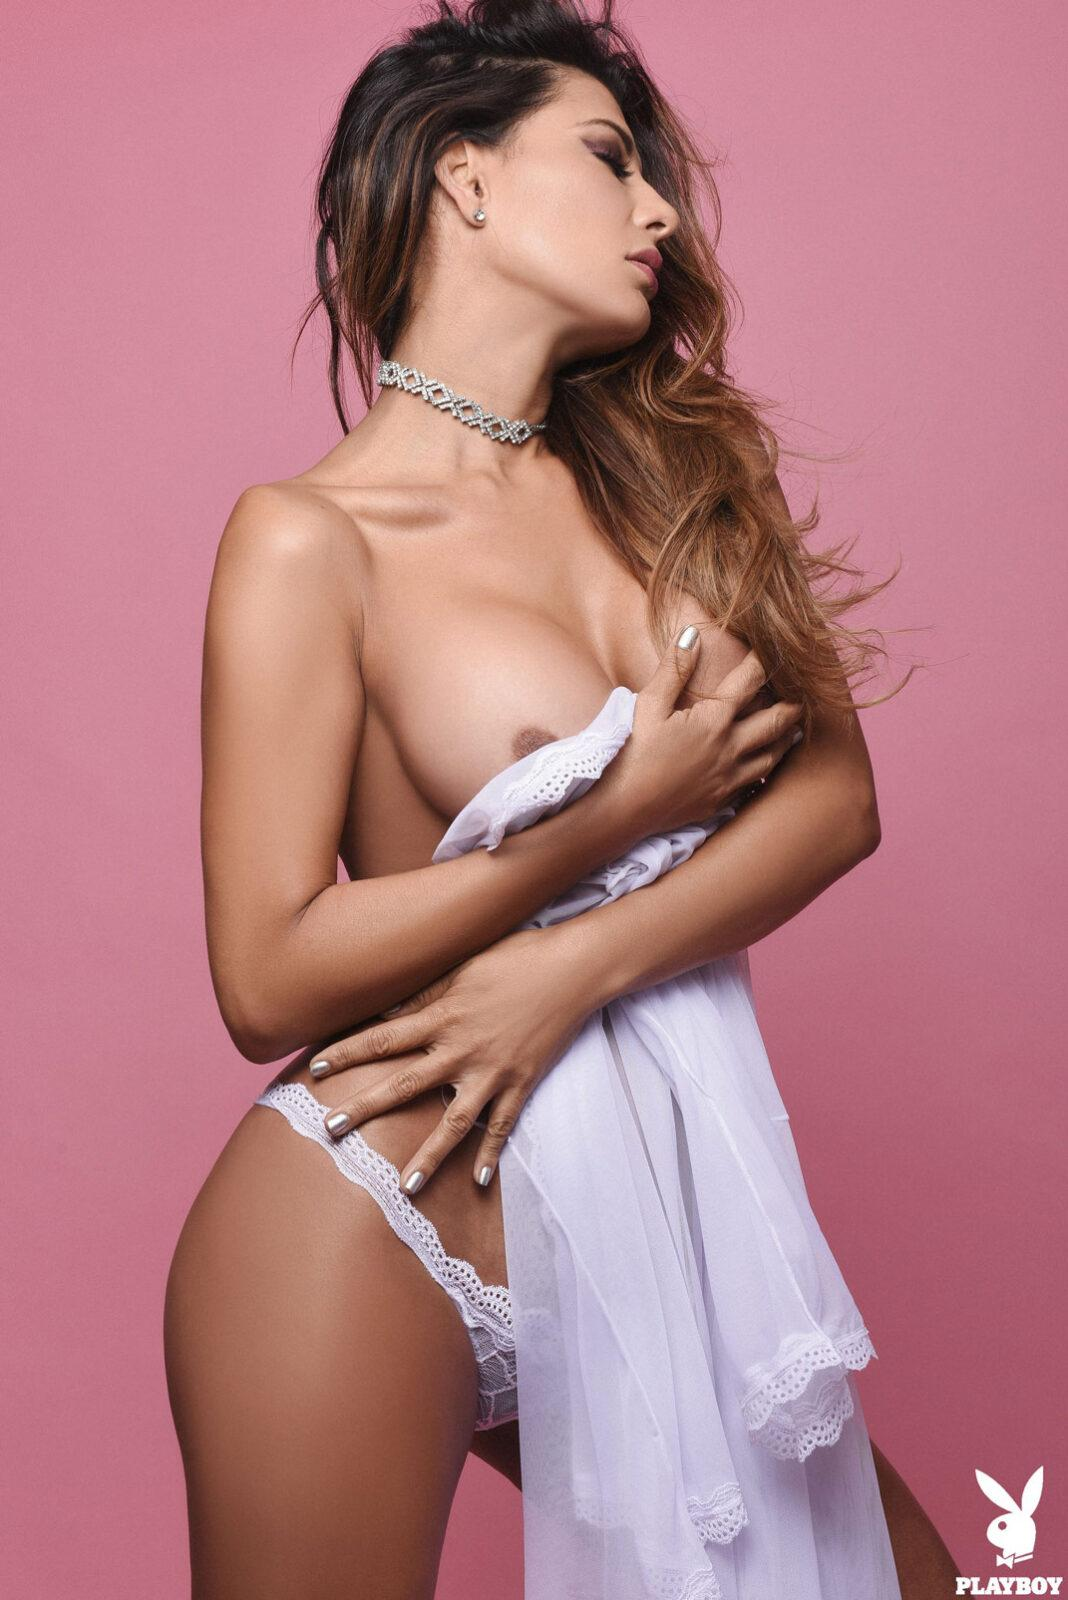 viviana castrillon in playboy mexico7